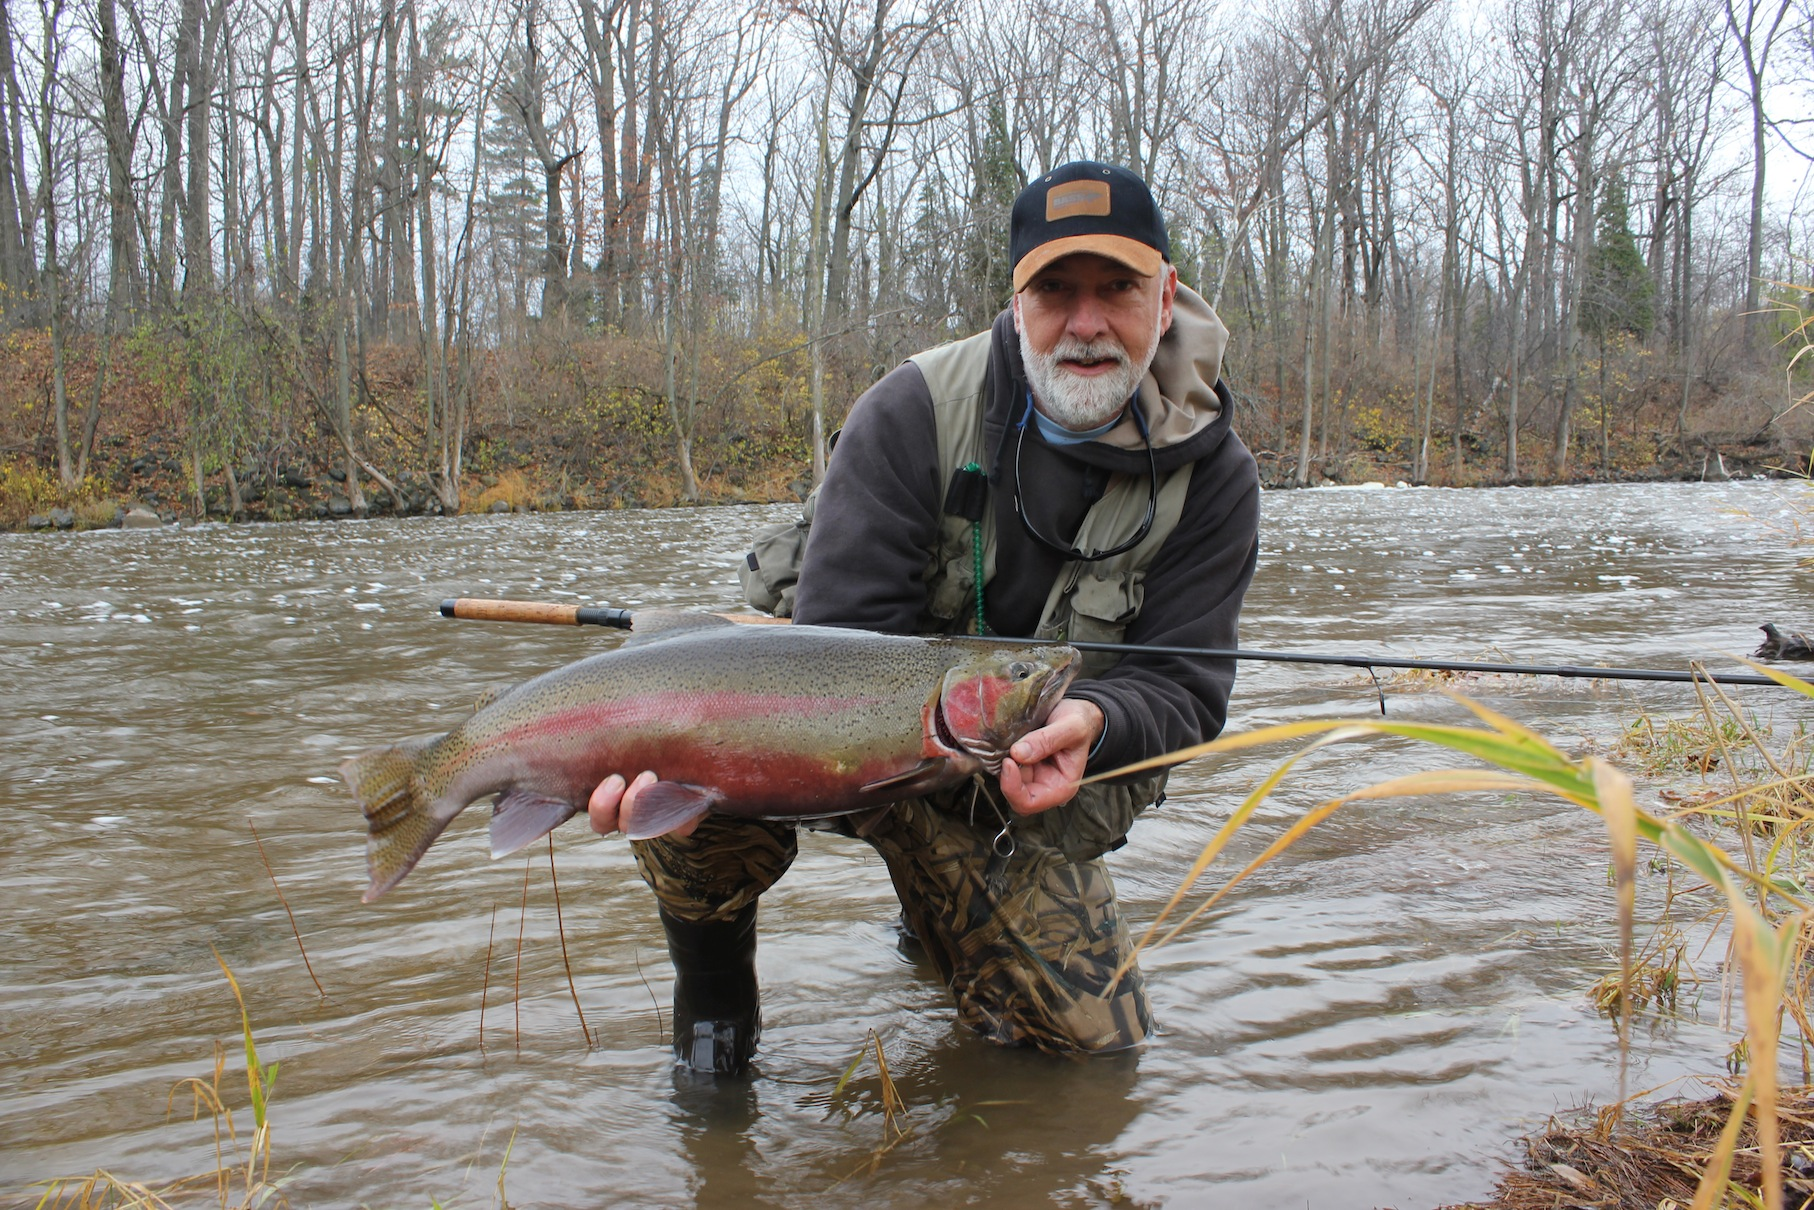 It's that time of year again. Rivers swollen with warming rain bring steelhead charging into the